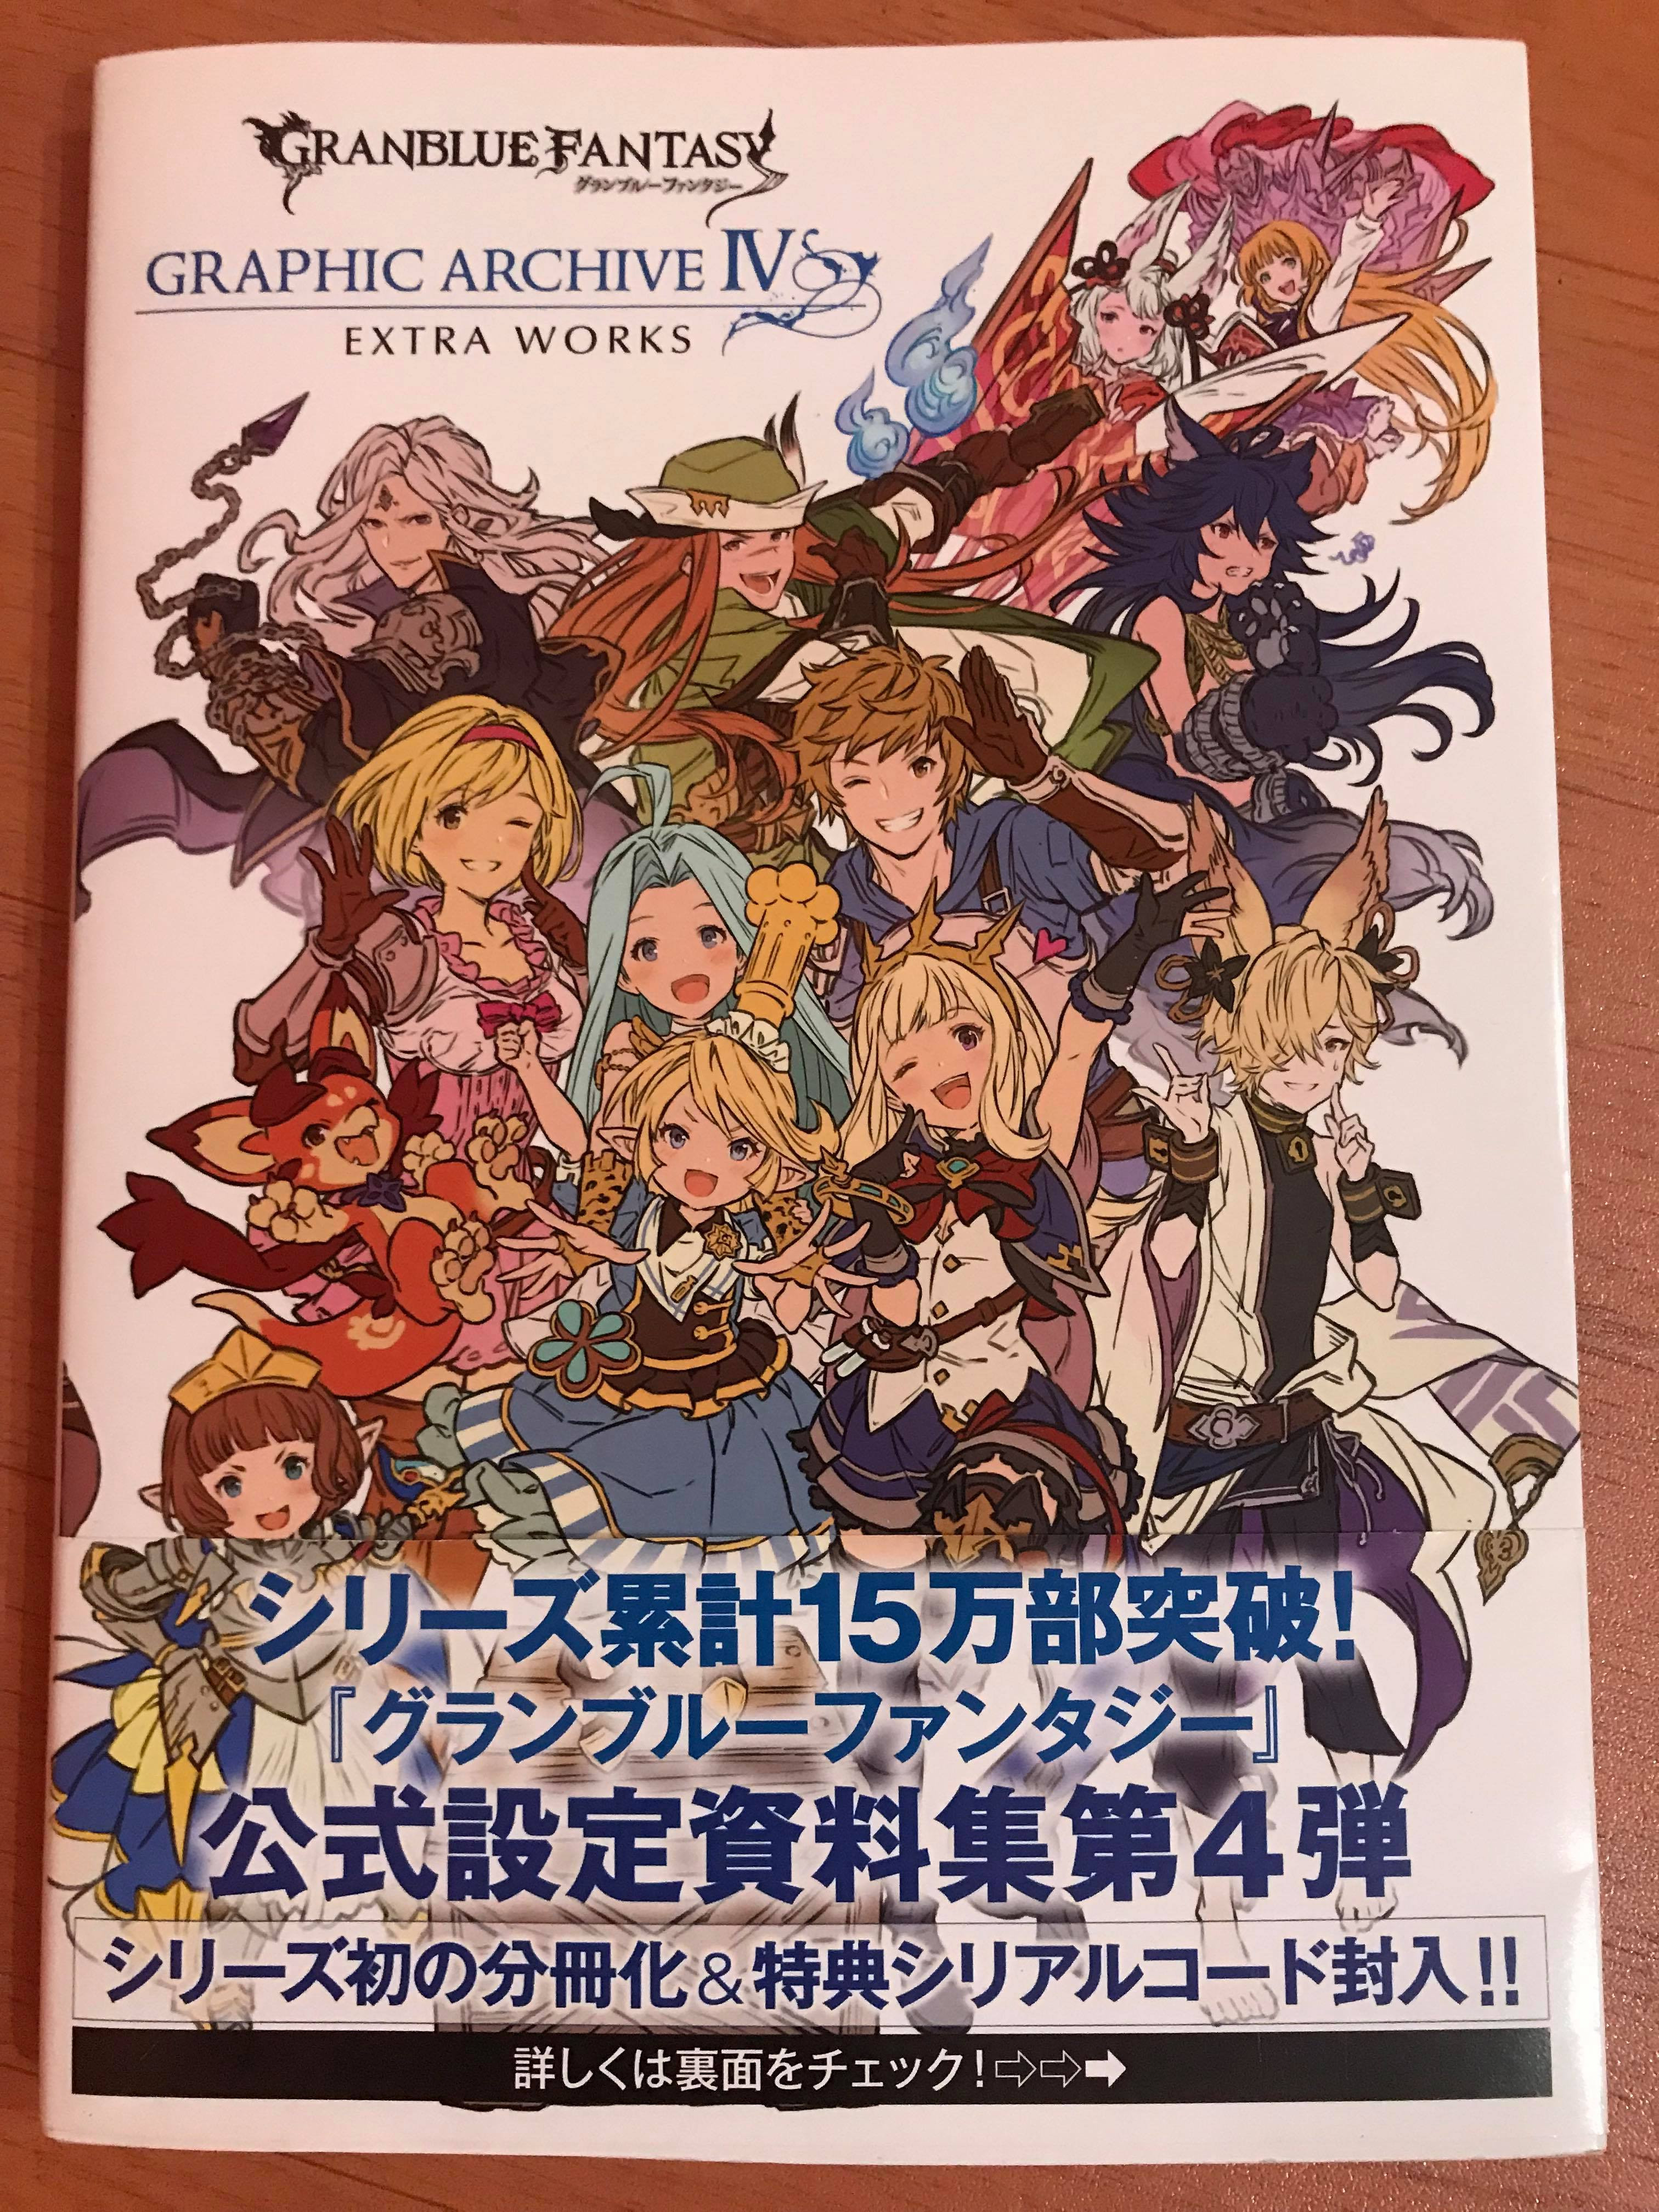 GRANBLUE FANTASY GRAPHIC ARCHIVE IV EXTRA WORKS